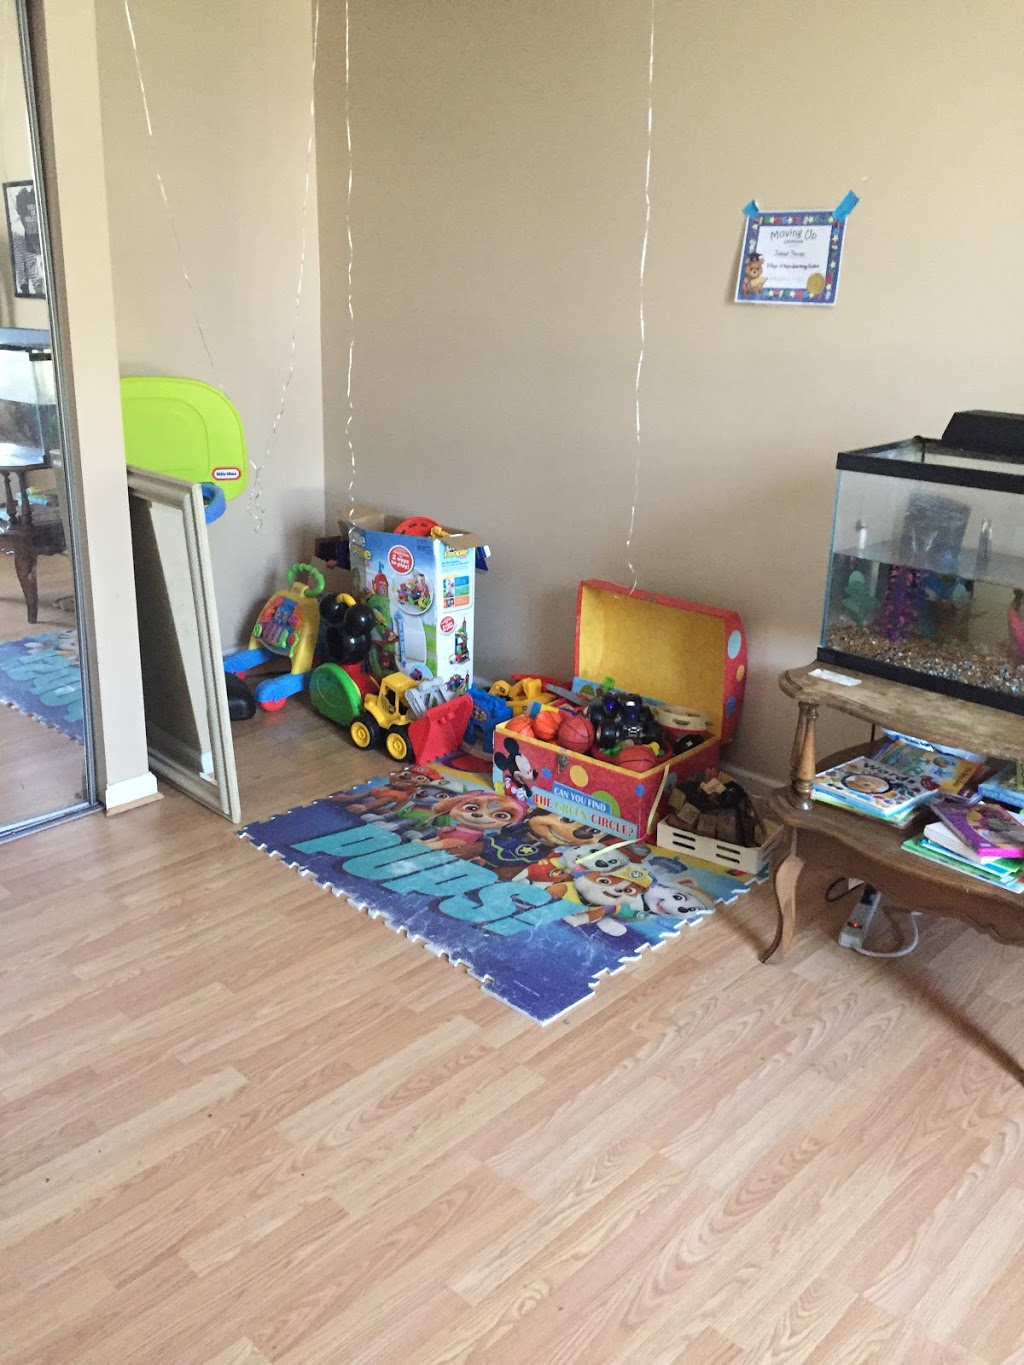 Mrs. Thomas cleaning service LLC - point of interest  | Photo 2 of 10 | Address: 1350 S Kildare Ave, Chicago, IL 60623, USA | Phone: (312) 956-6417